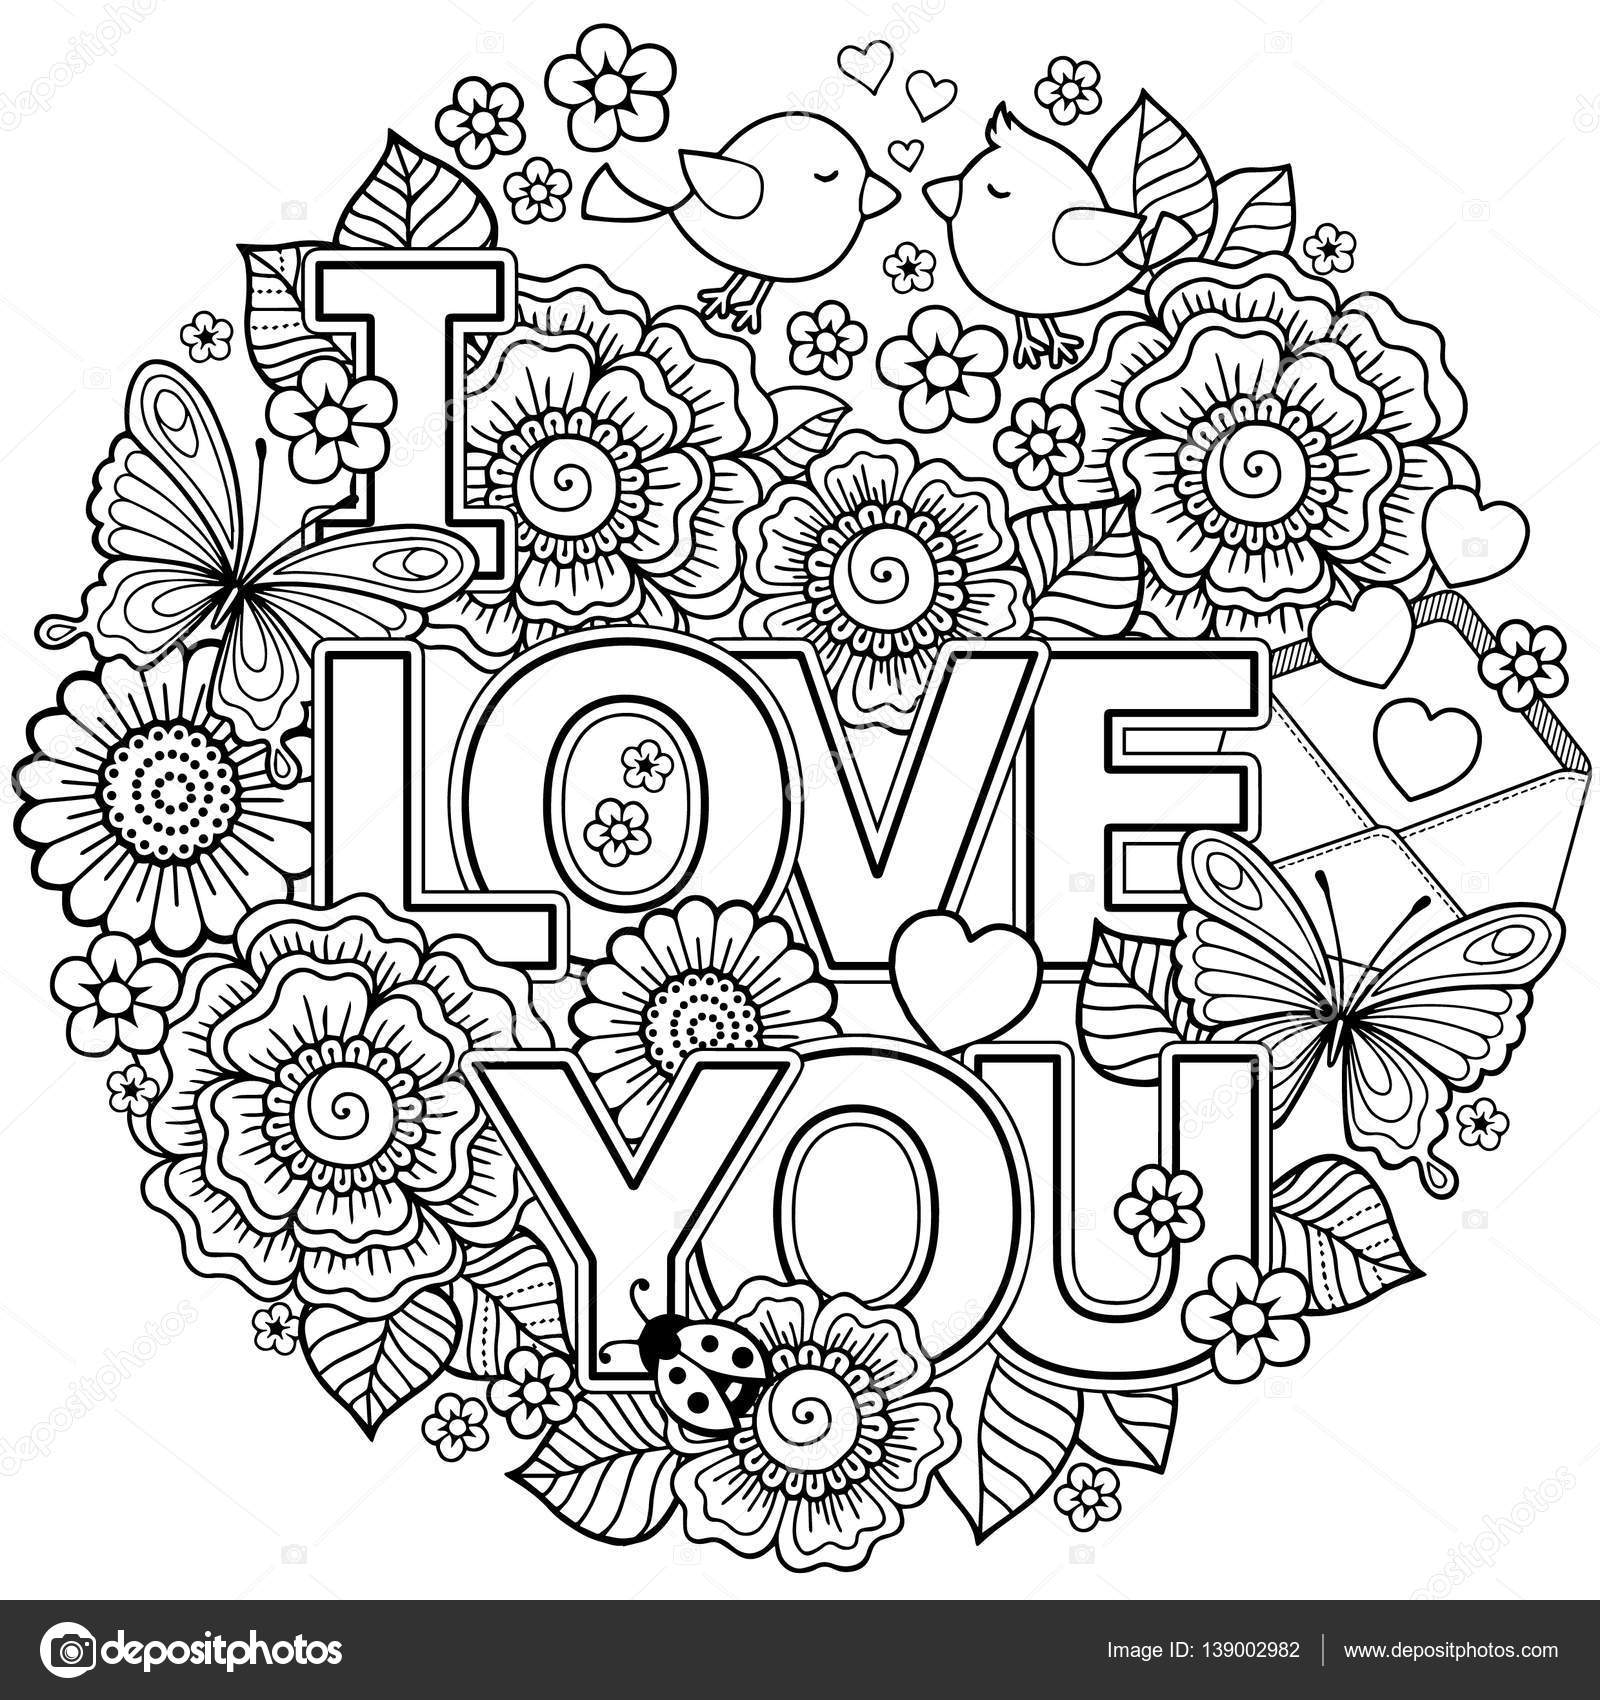 Coloring pages for adults valentines day - Vector Coloring Page For Adult Rounder Frame Made Of Flowers Butterflies Birds Kissing And The Word Love Ornamental Wreath Design For Valentine S Day